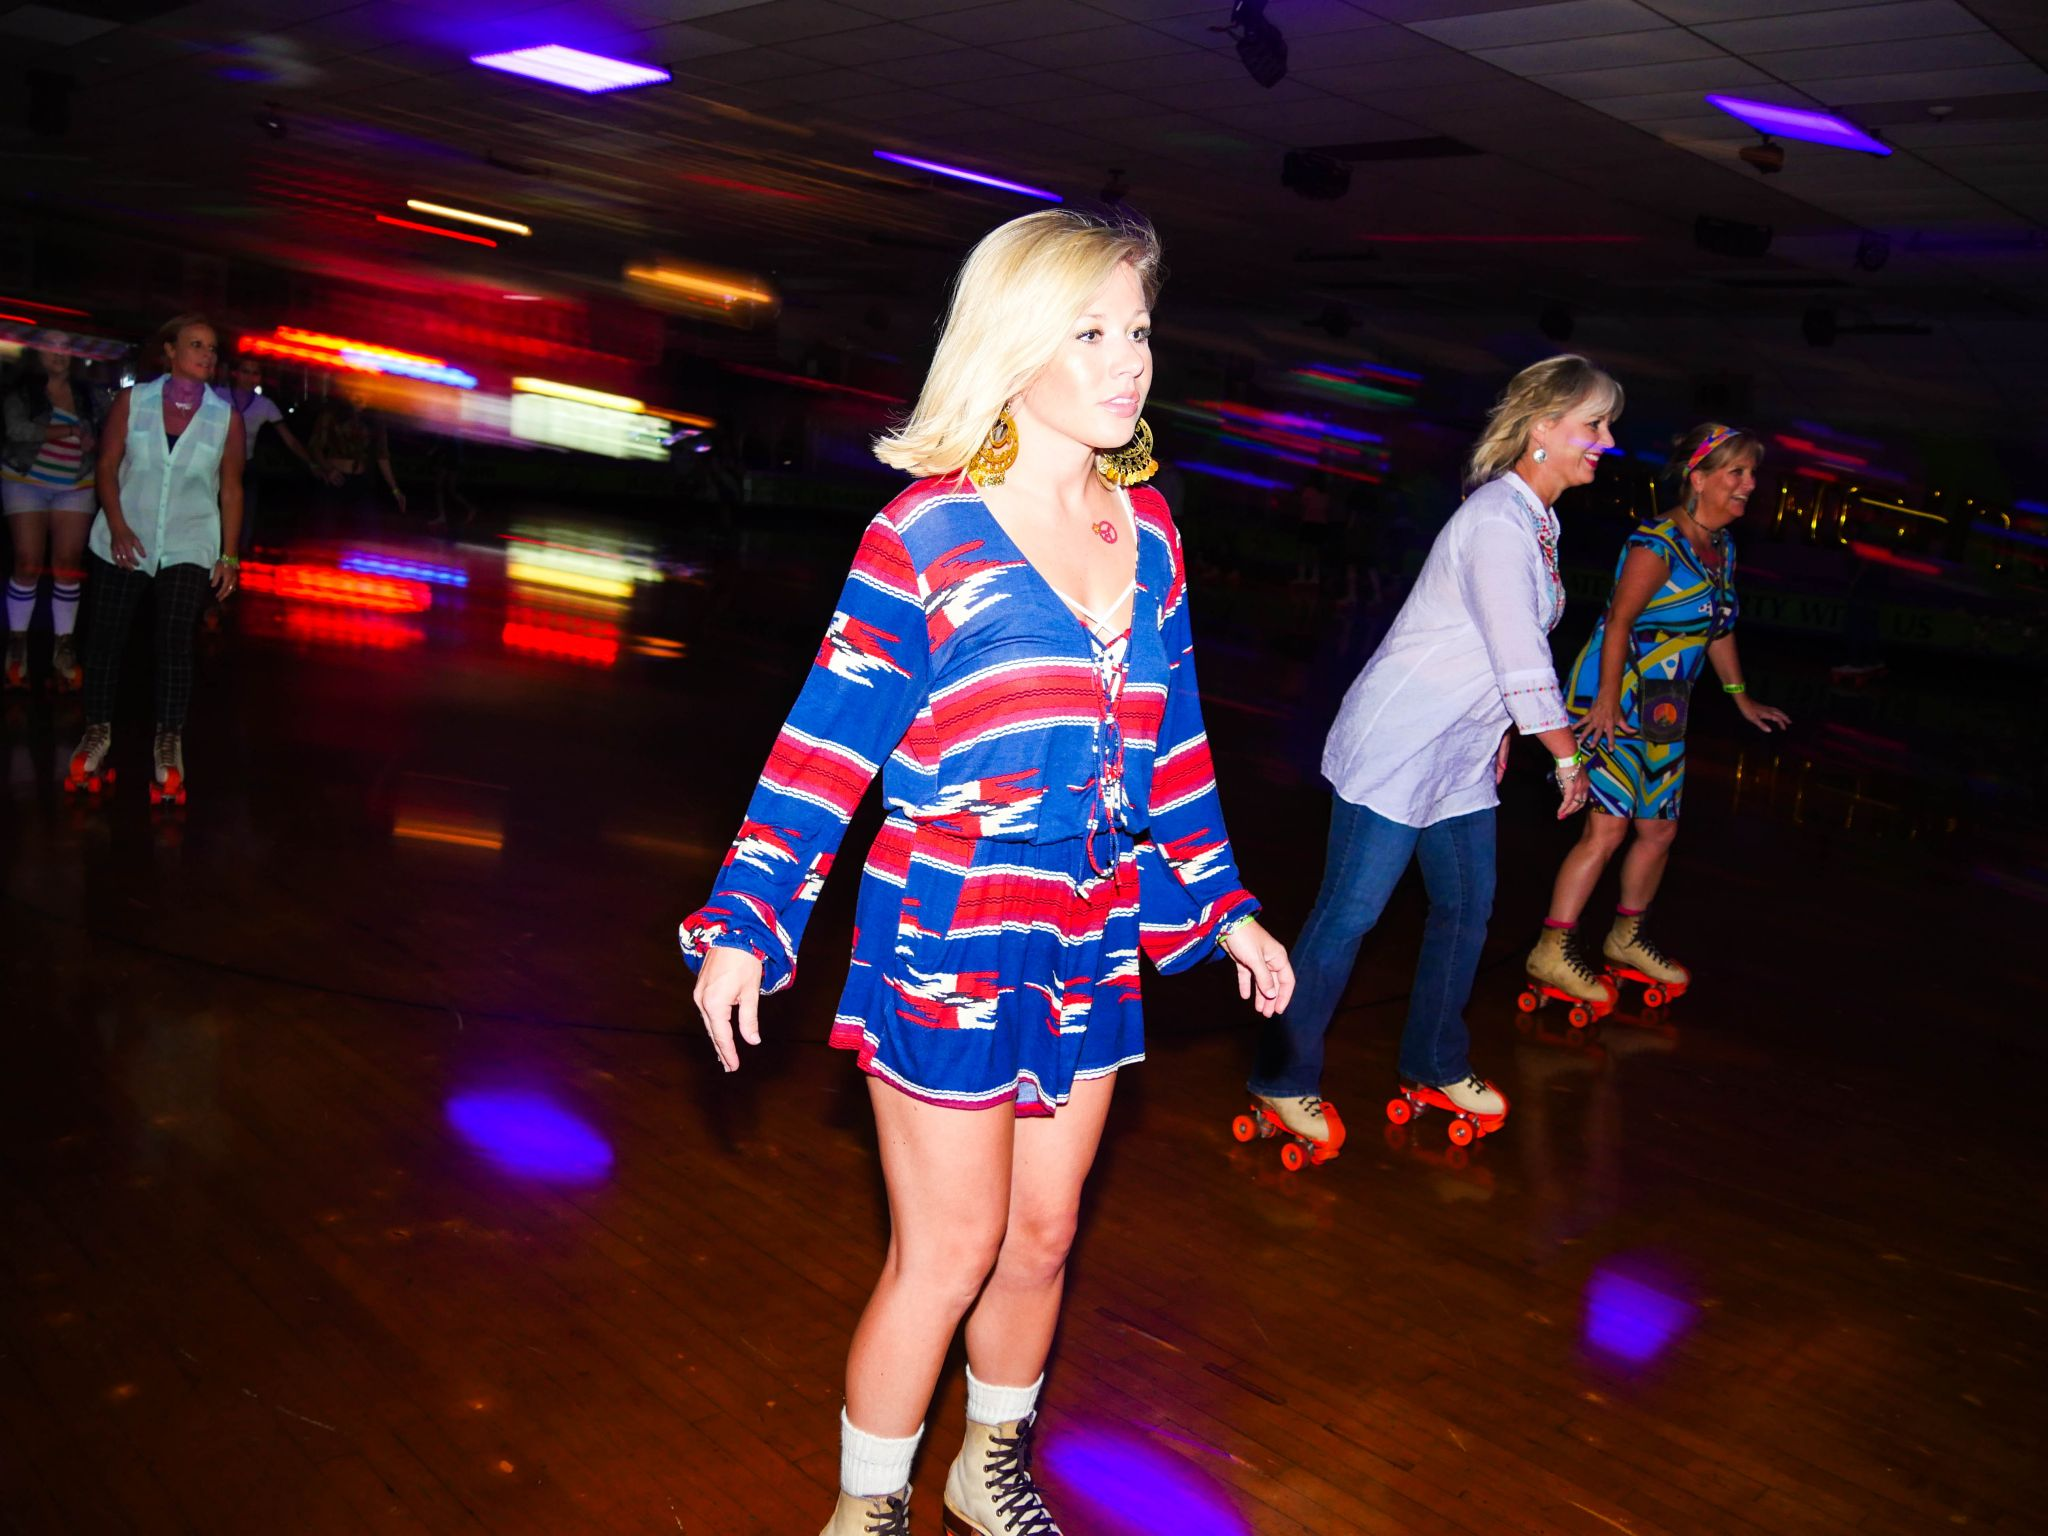 Photos San Antonio Roller Skaters Get Their Groove On At